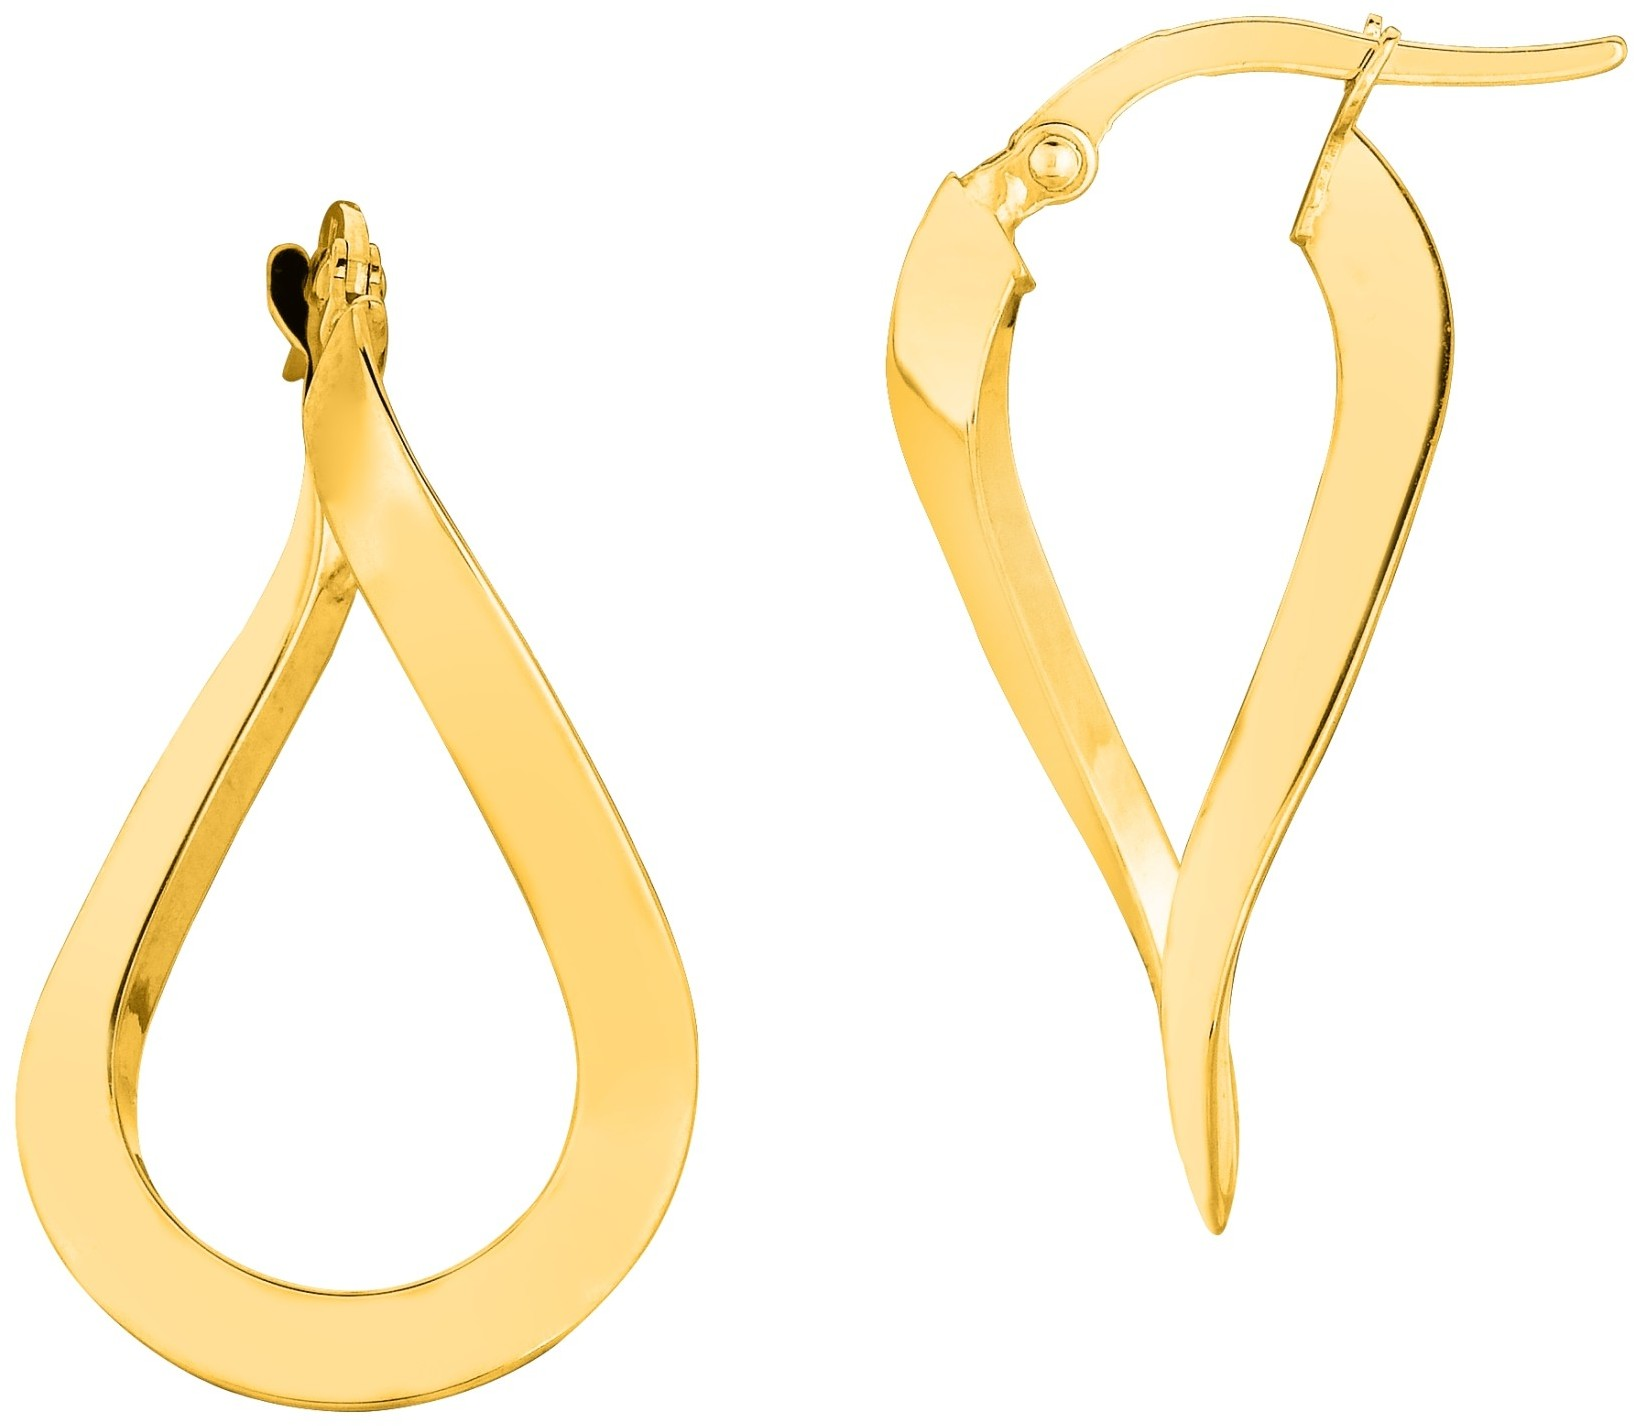 14K Yellow Gold Shiny Oval Shape Freeform Hoop Earrings (BTER1484)